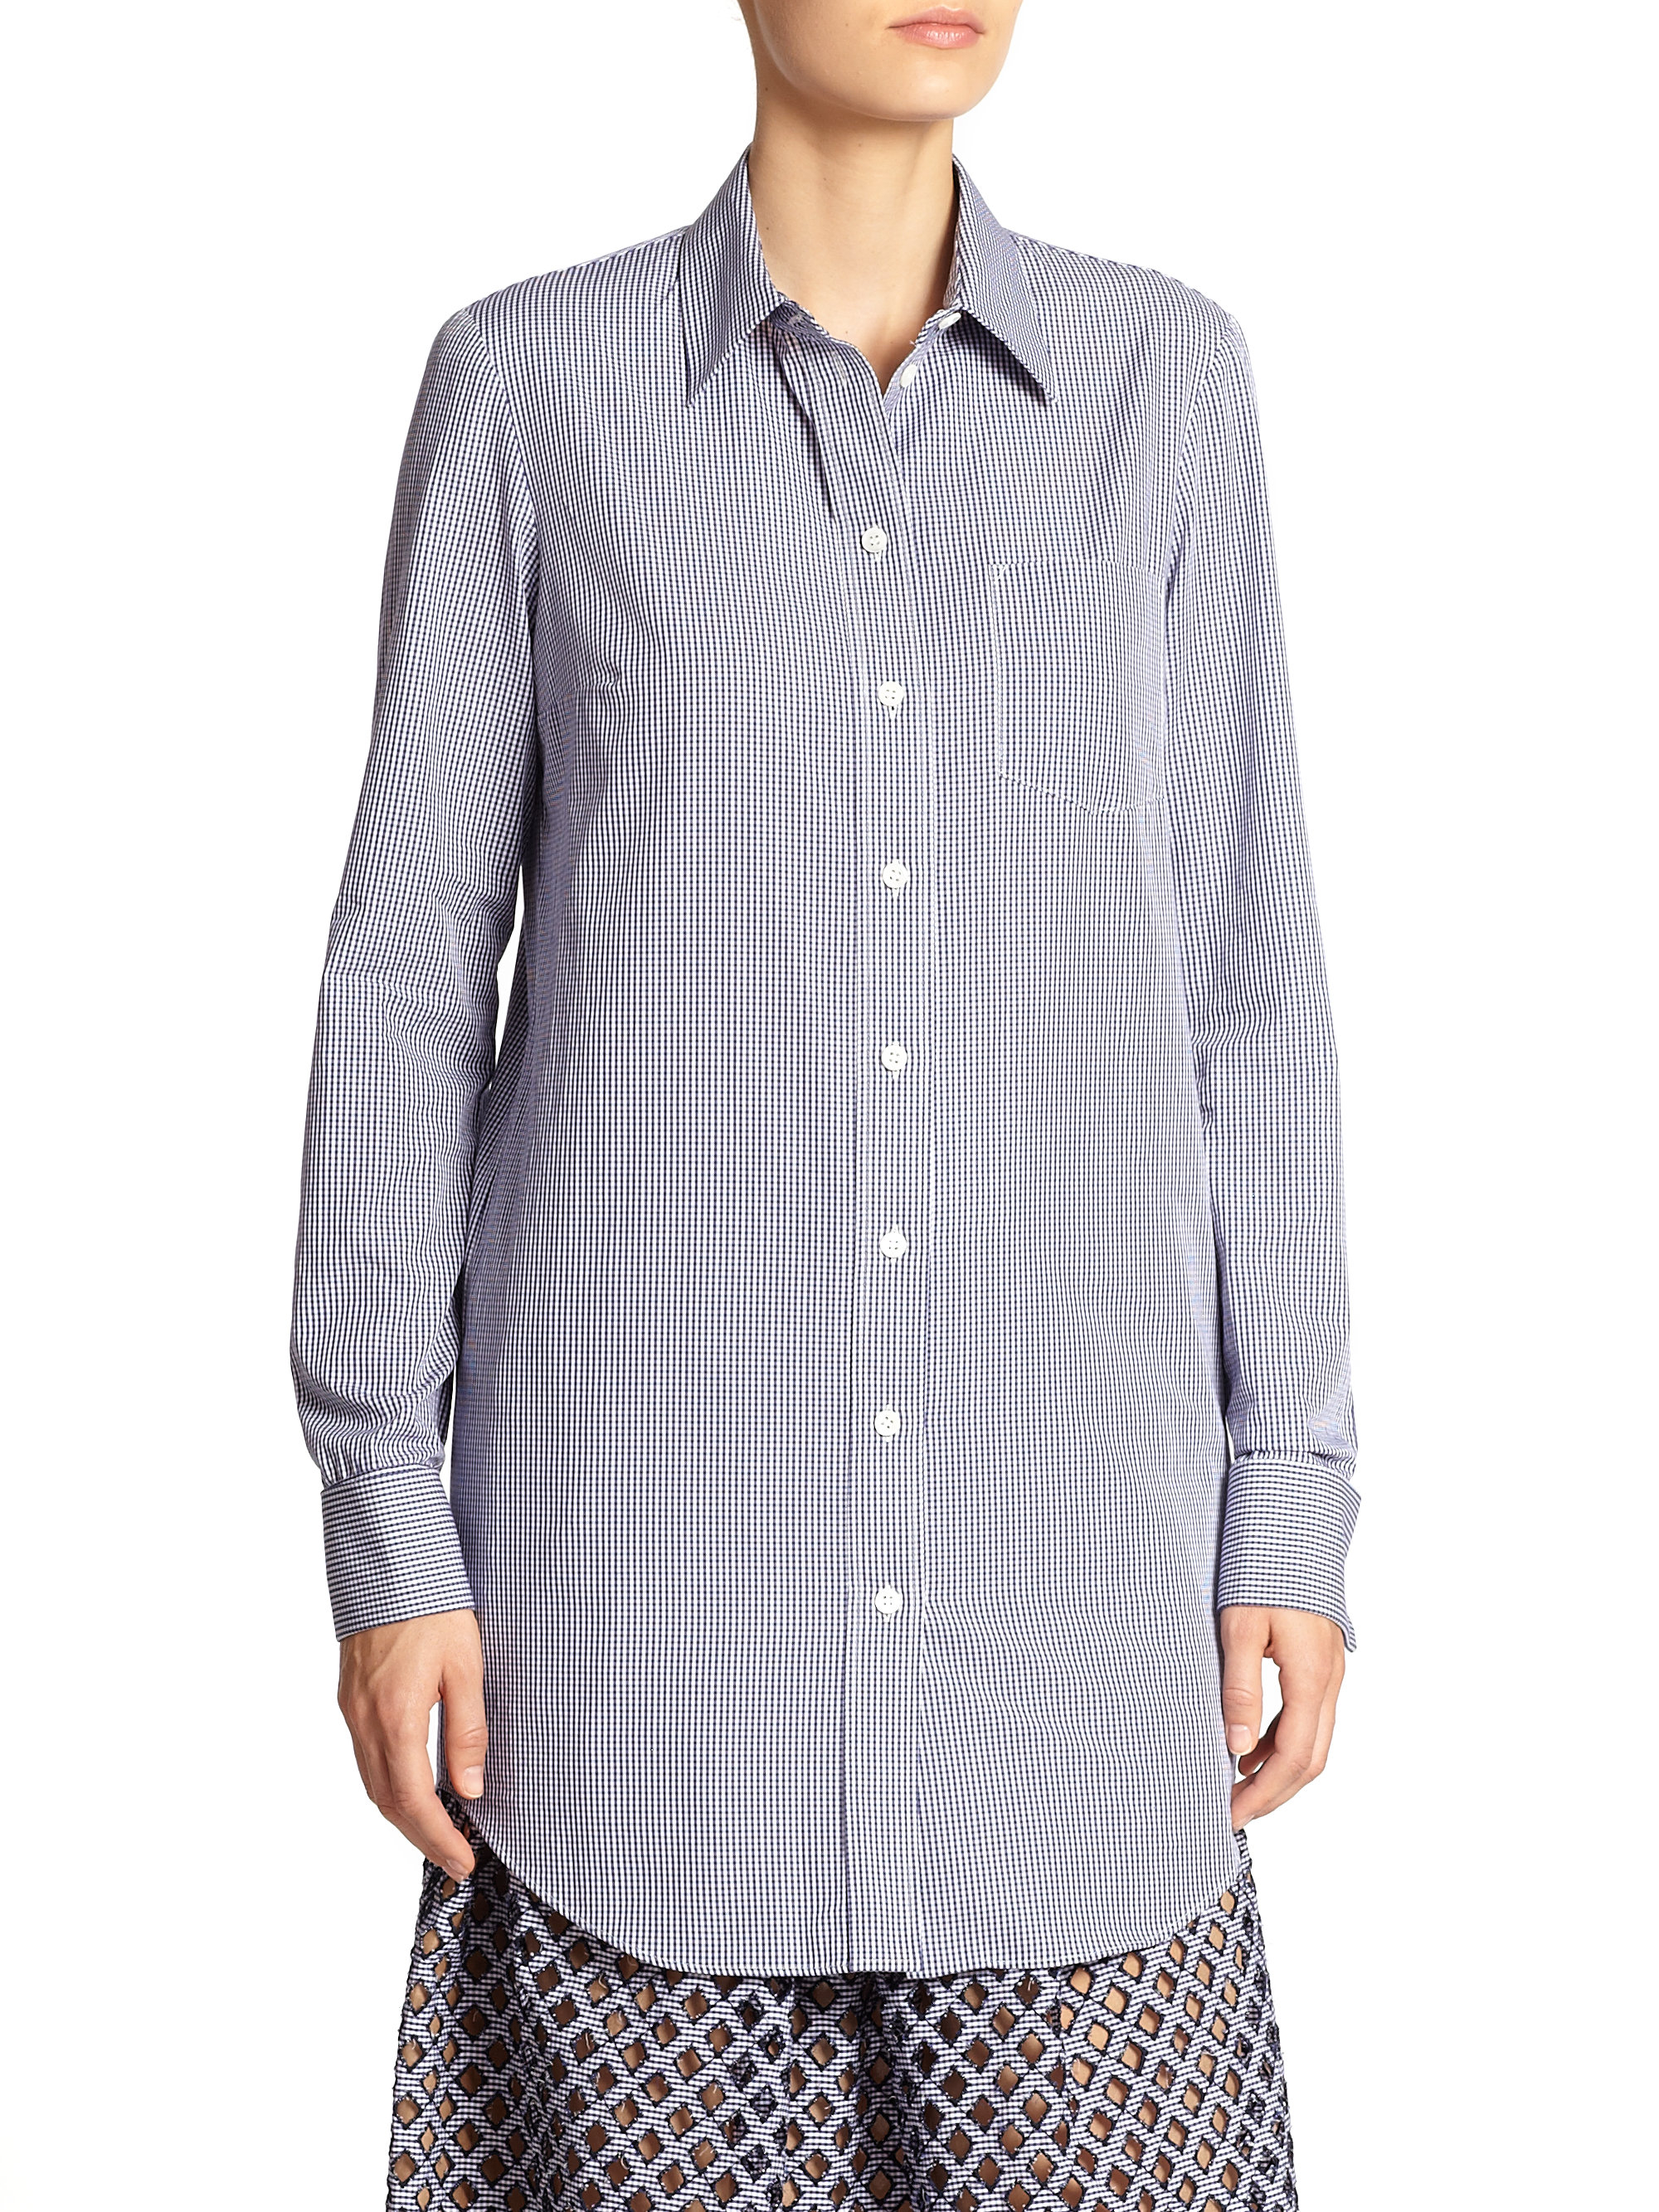 Michael Kors Gingham Button Down Shirt In Blue Lyst